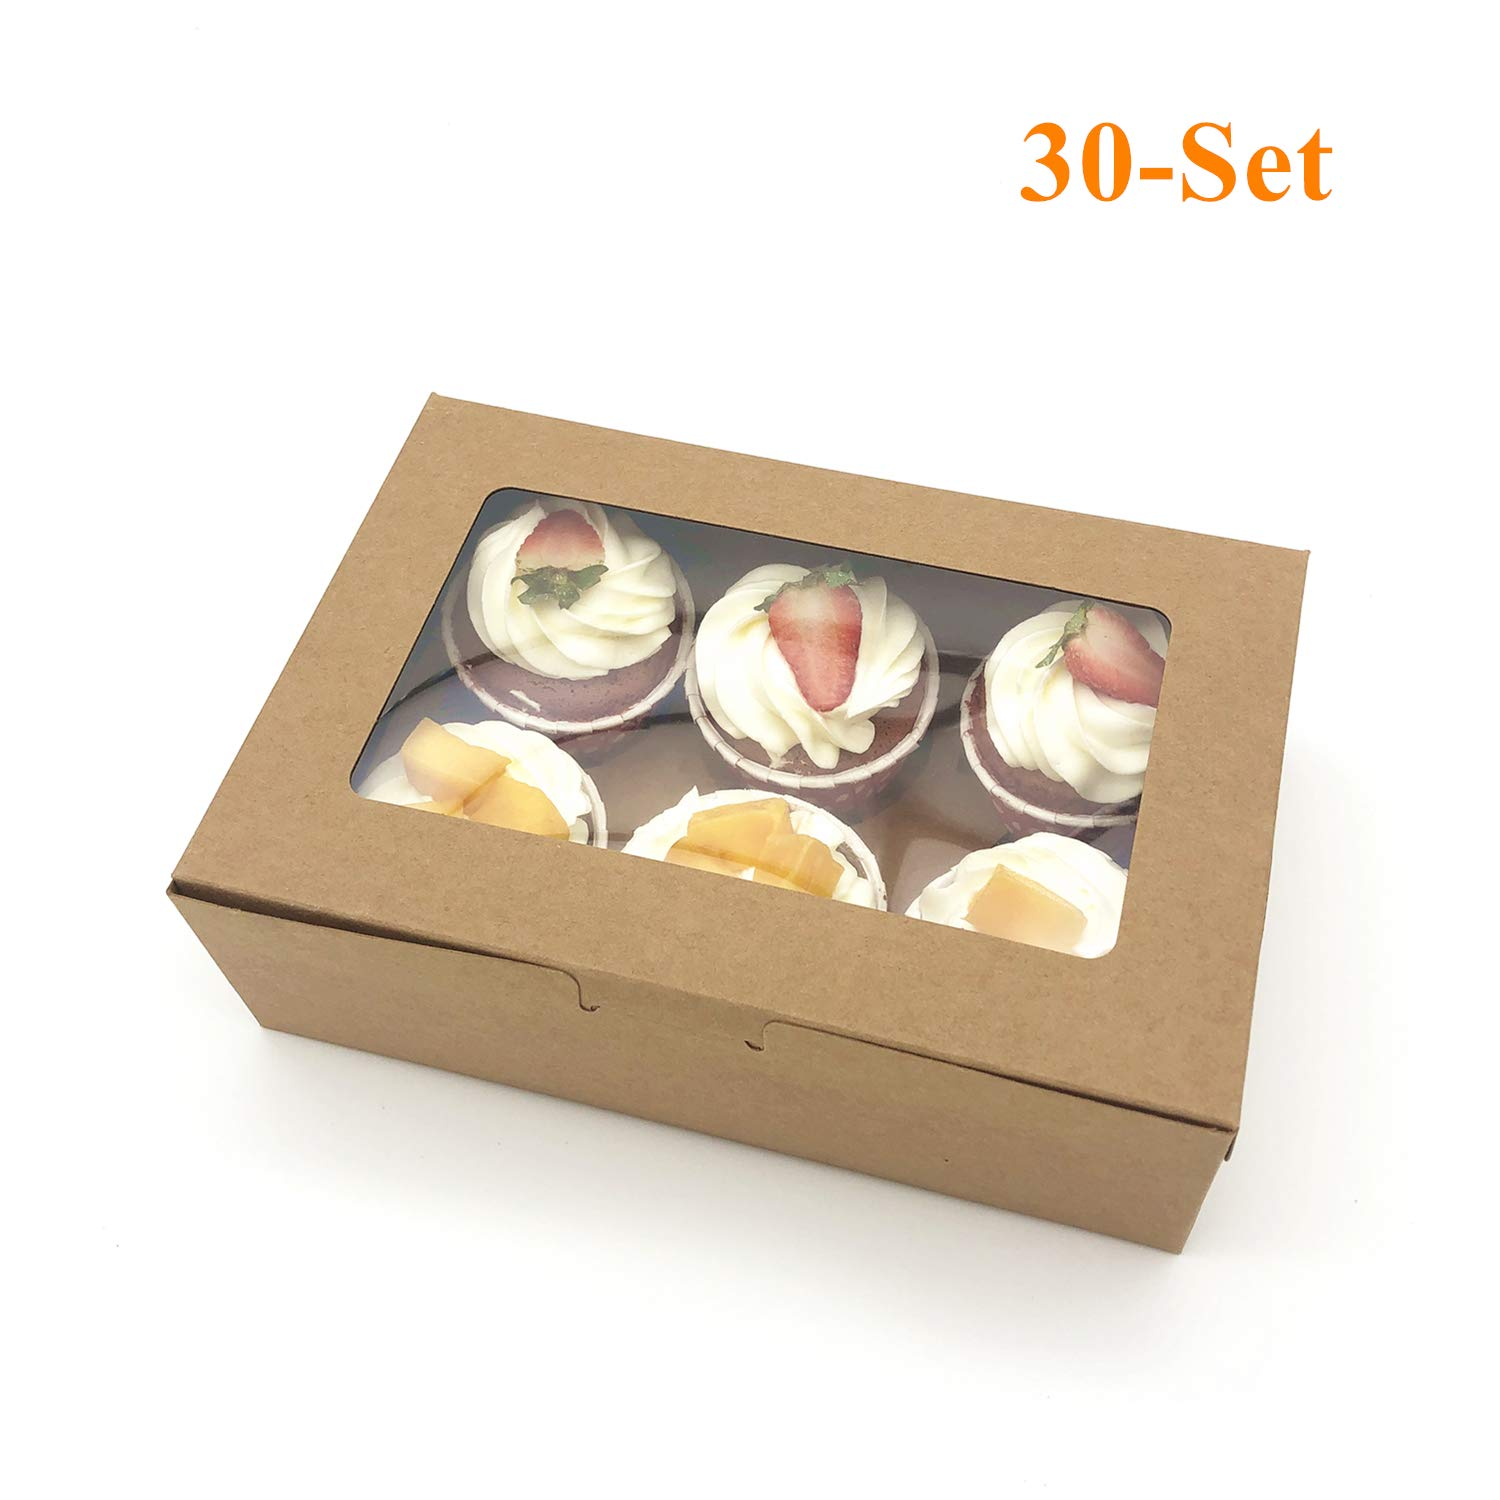 30-Set Cupcake Boxes with Inserts and Window Fits 6 Cupcakes, 9.4'' x 6.3'' x 3'', Brown Food Grade Kraft Cookie Gift Boxes, Treat Boxes for Cookies, Bakeries, Muffins and Pastries